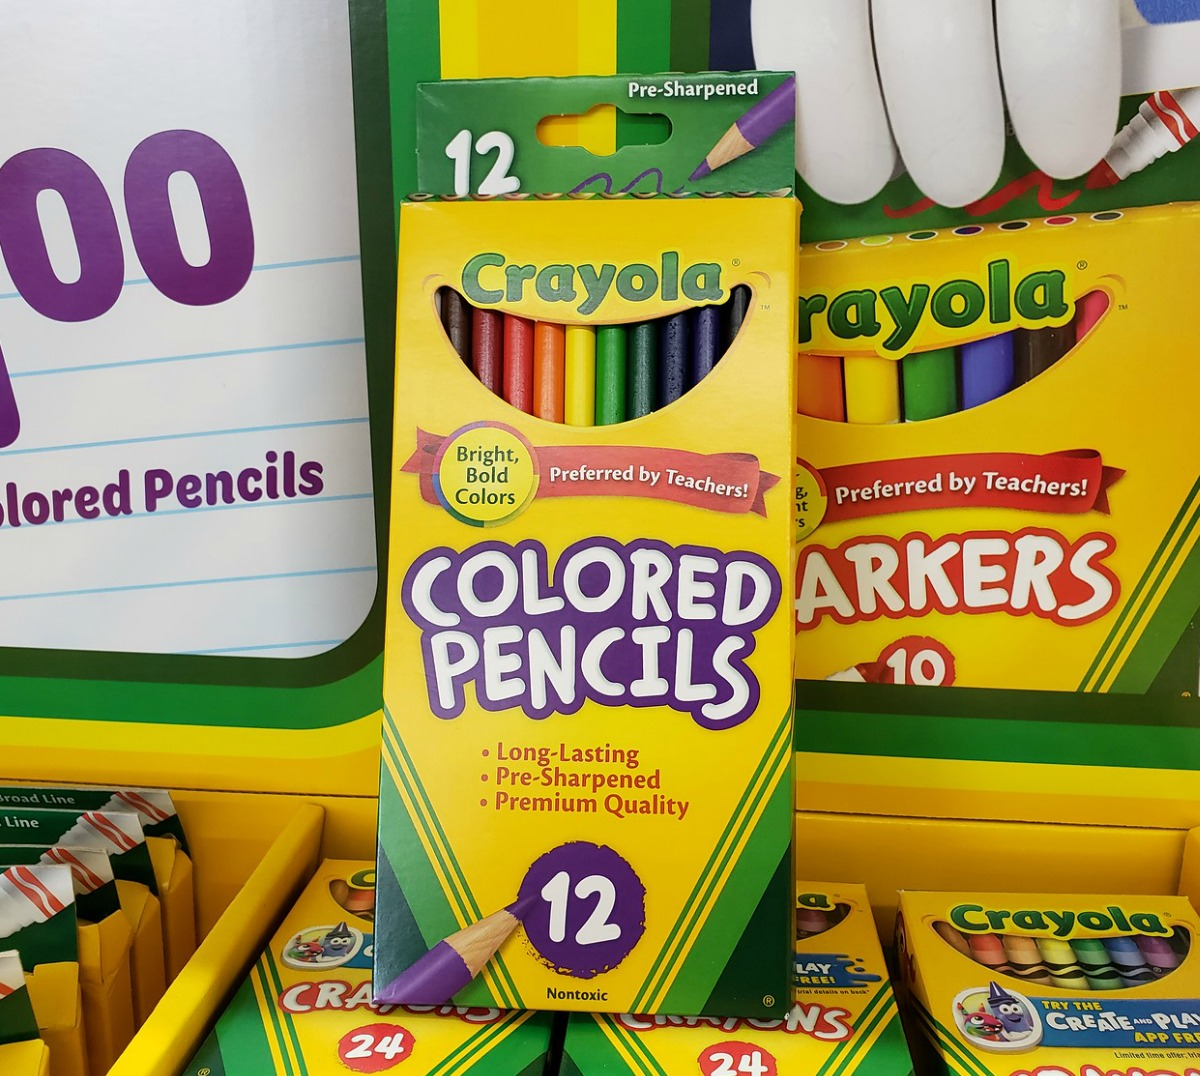 12-Pack of Crayola colored pencils in store display